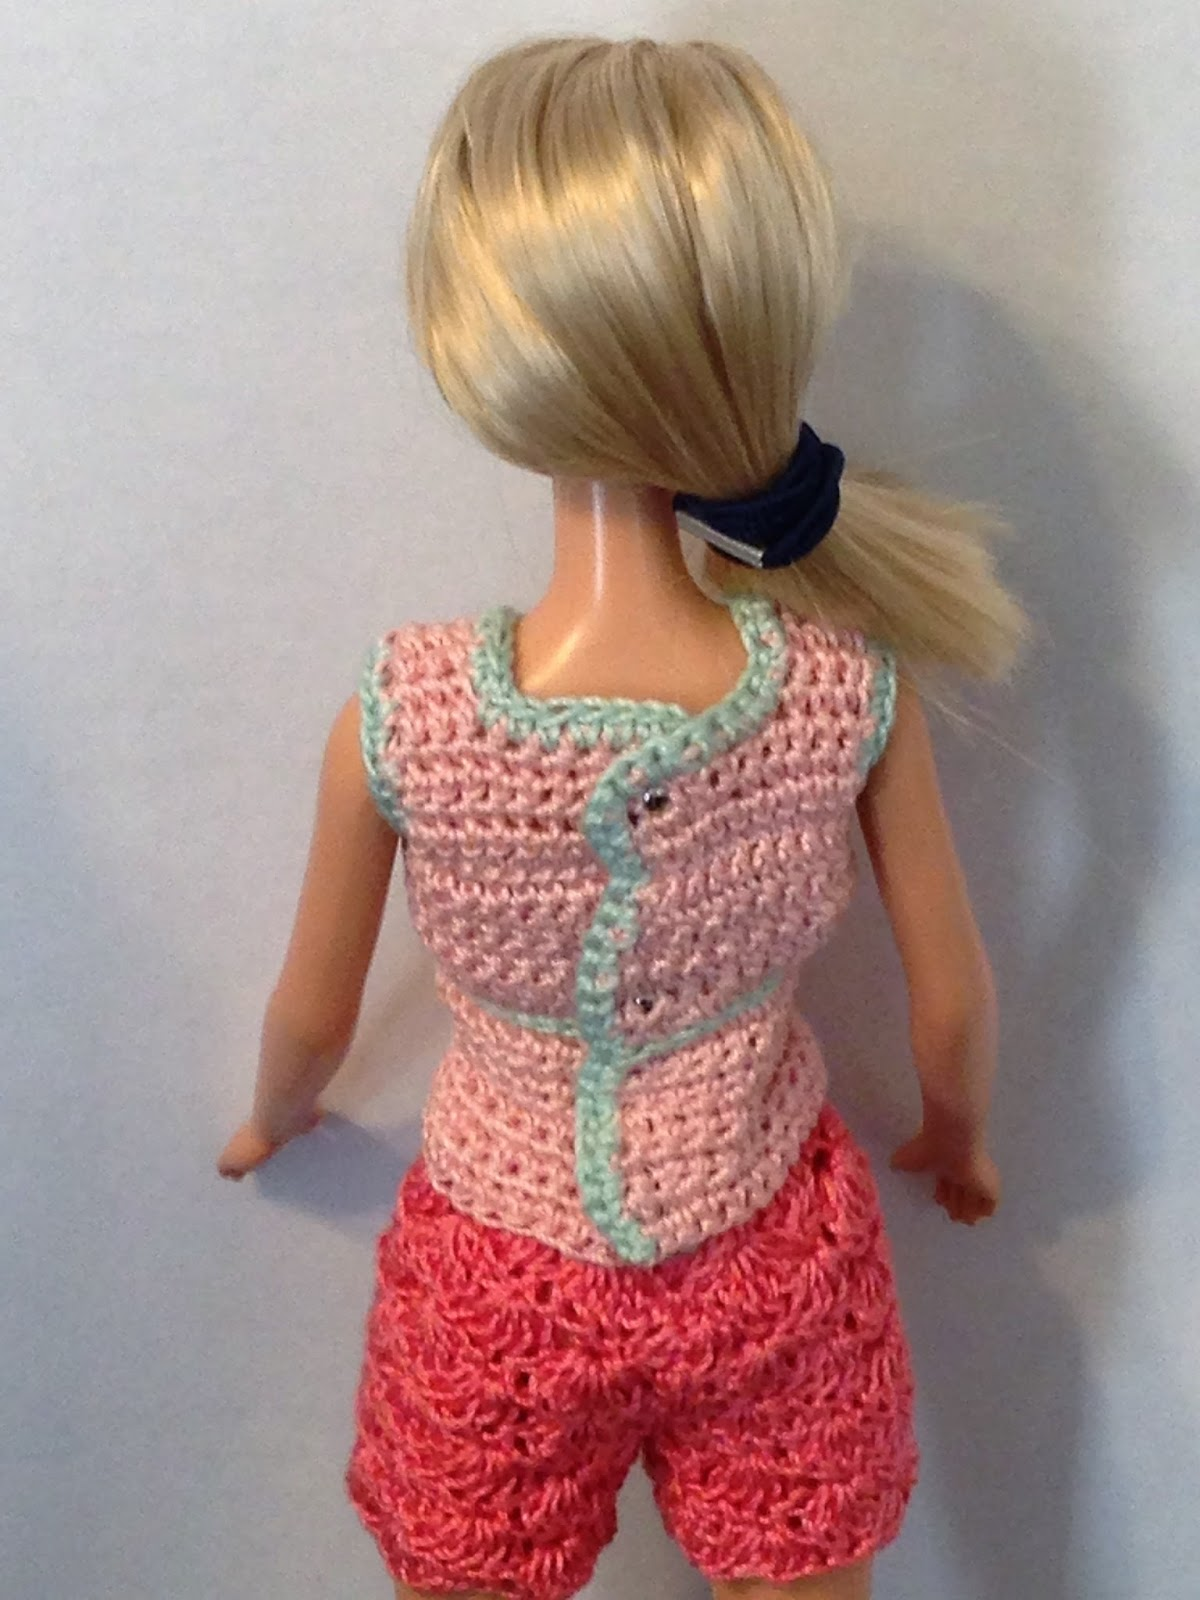 Crochet Pattern For Doll Sling : KJ Doll Fashions: 11.5? Fashion Doll (Barbie) V-neck Wrap ...